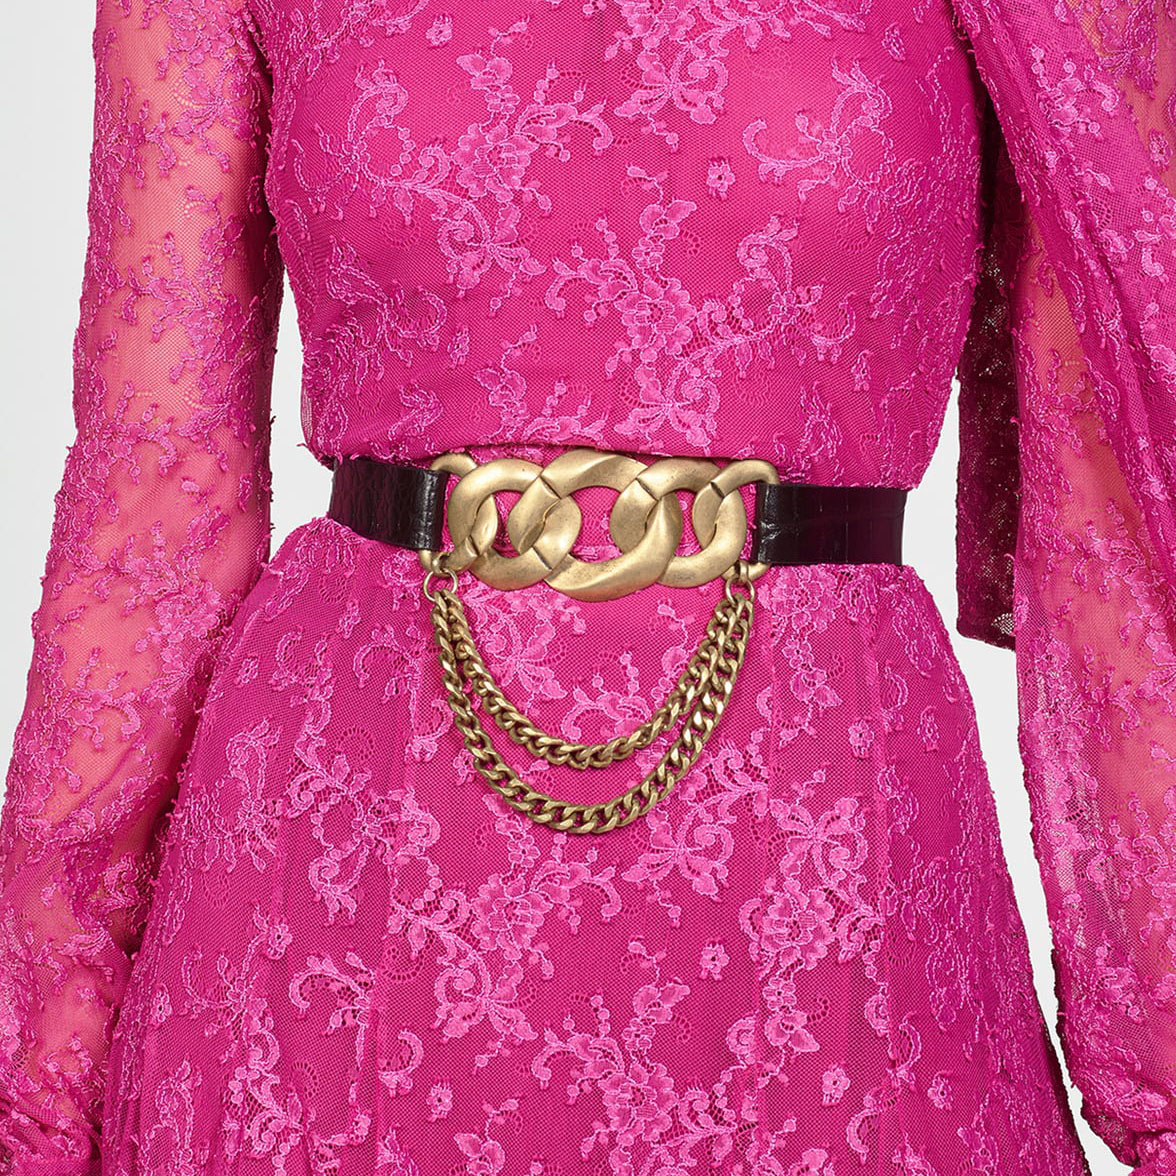 Miwens 2019 New Za Metal Link Leather Belt For Women Vintage Gold Maxi Button Waist Belts Bohemia Christmas Belly Chains Jewelry